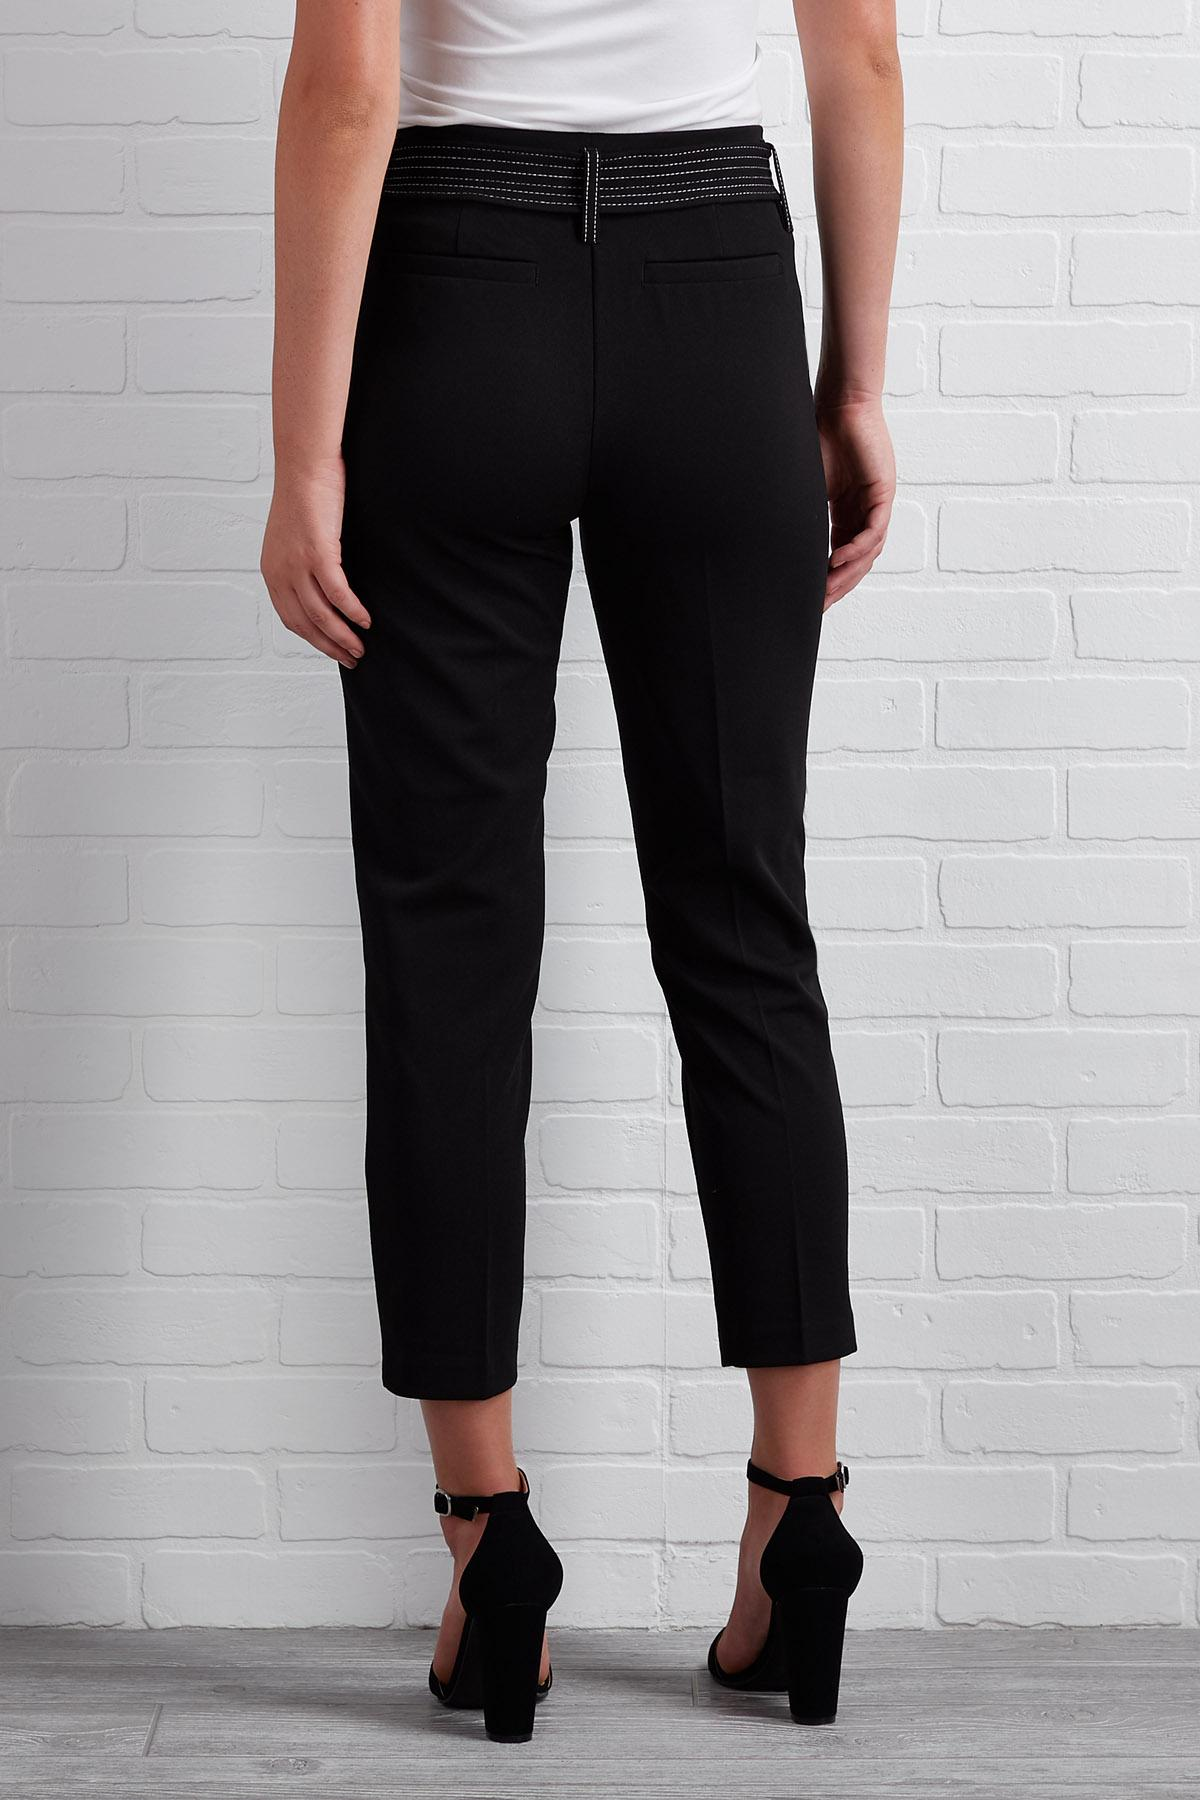 Crop It Like It's Hot Trouser Pants